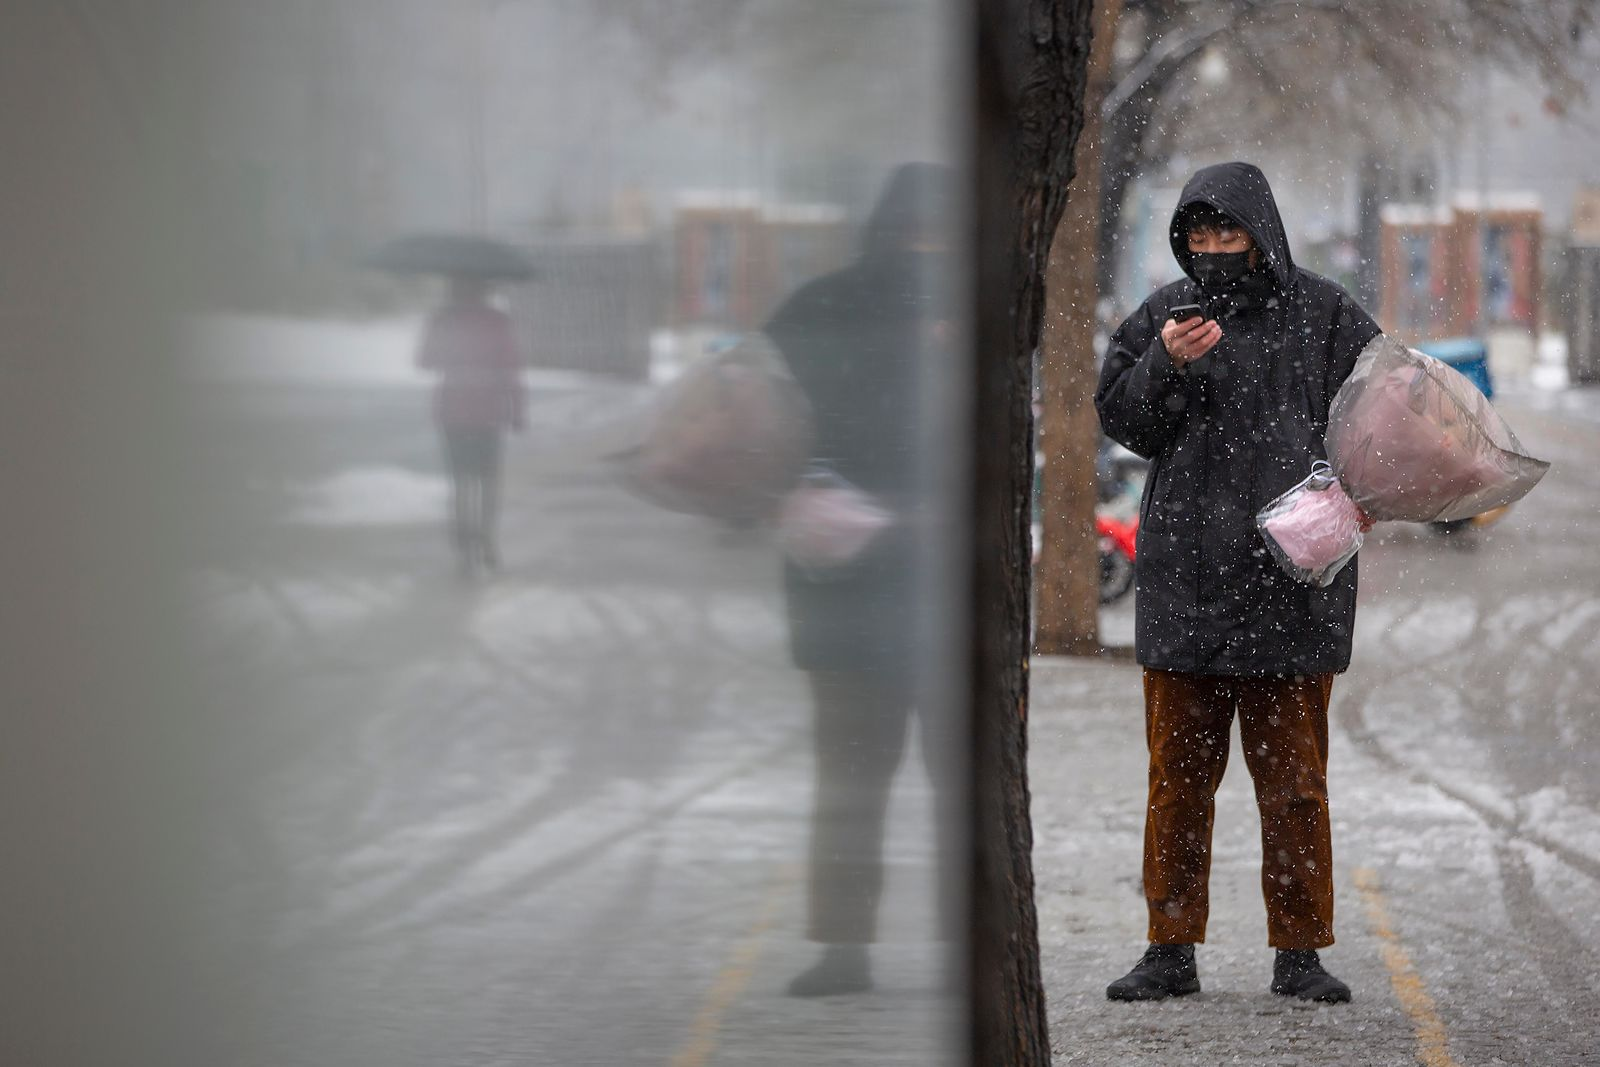 A man wearing a face mask holds a flower bouquet as he stands along a street in Beijing, Friday, Feb. 14, 2020. China on Friday reported another sharp rise in the number of people infected with a new virus, as the death toll neared 1,400. (AP Photo/Mark Schiefelbein)